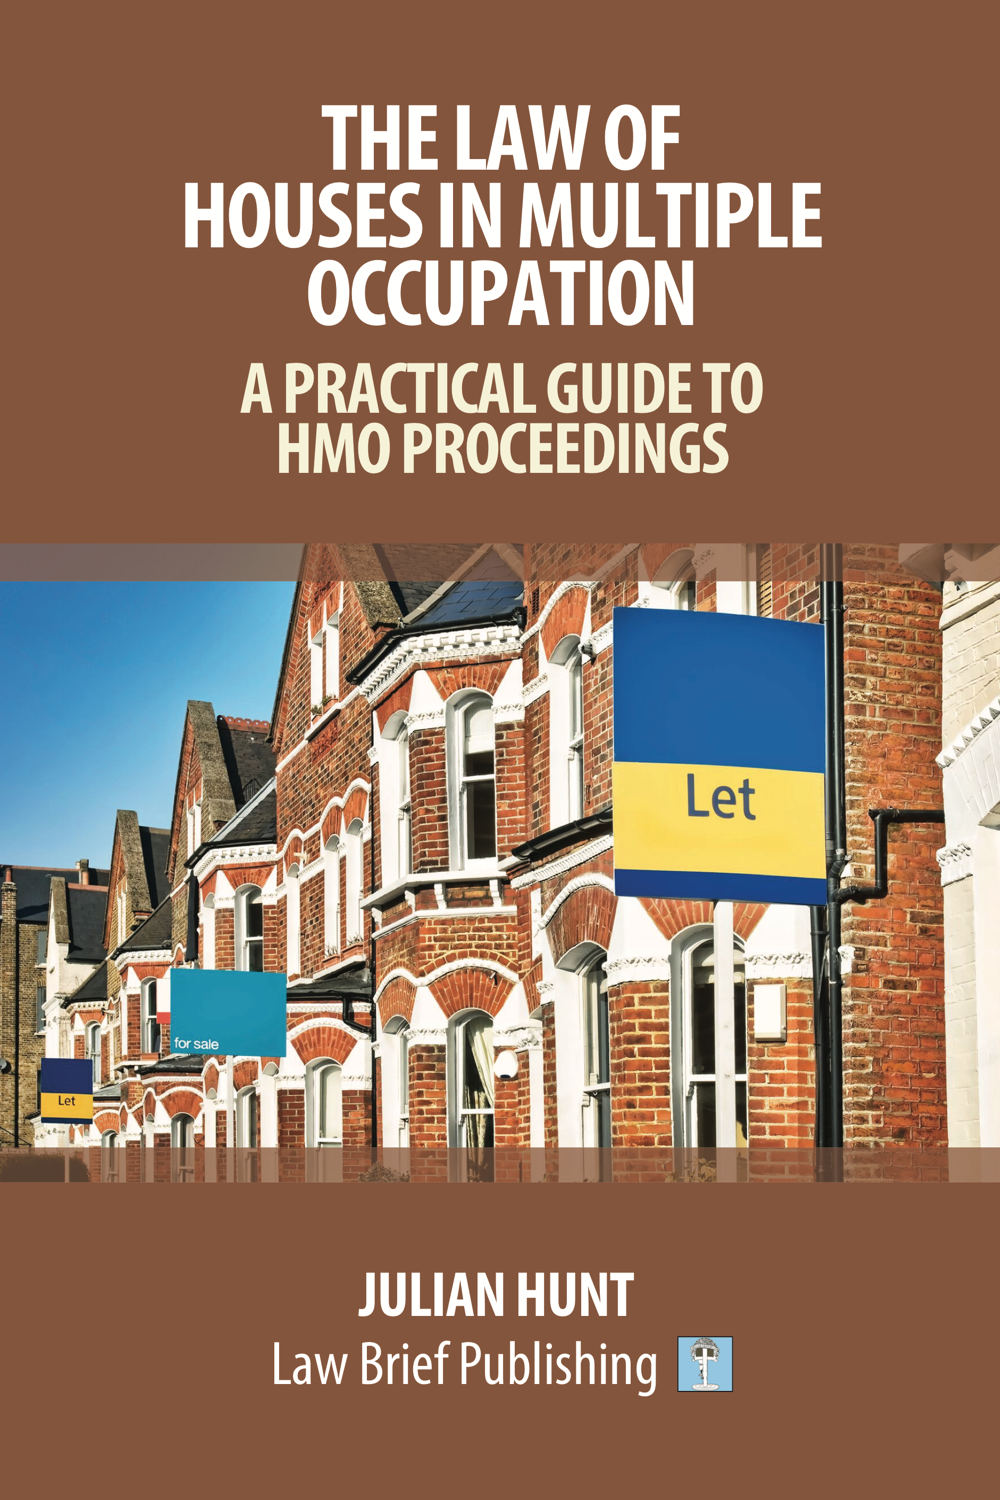 The Law Of Houses In Multiple Occupation A Practical Guide To Hmo Proceedings By Julian Hunt Law Brief Publishing